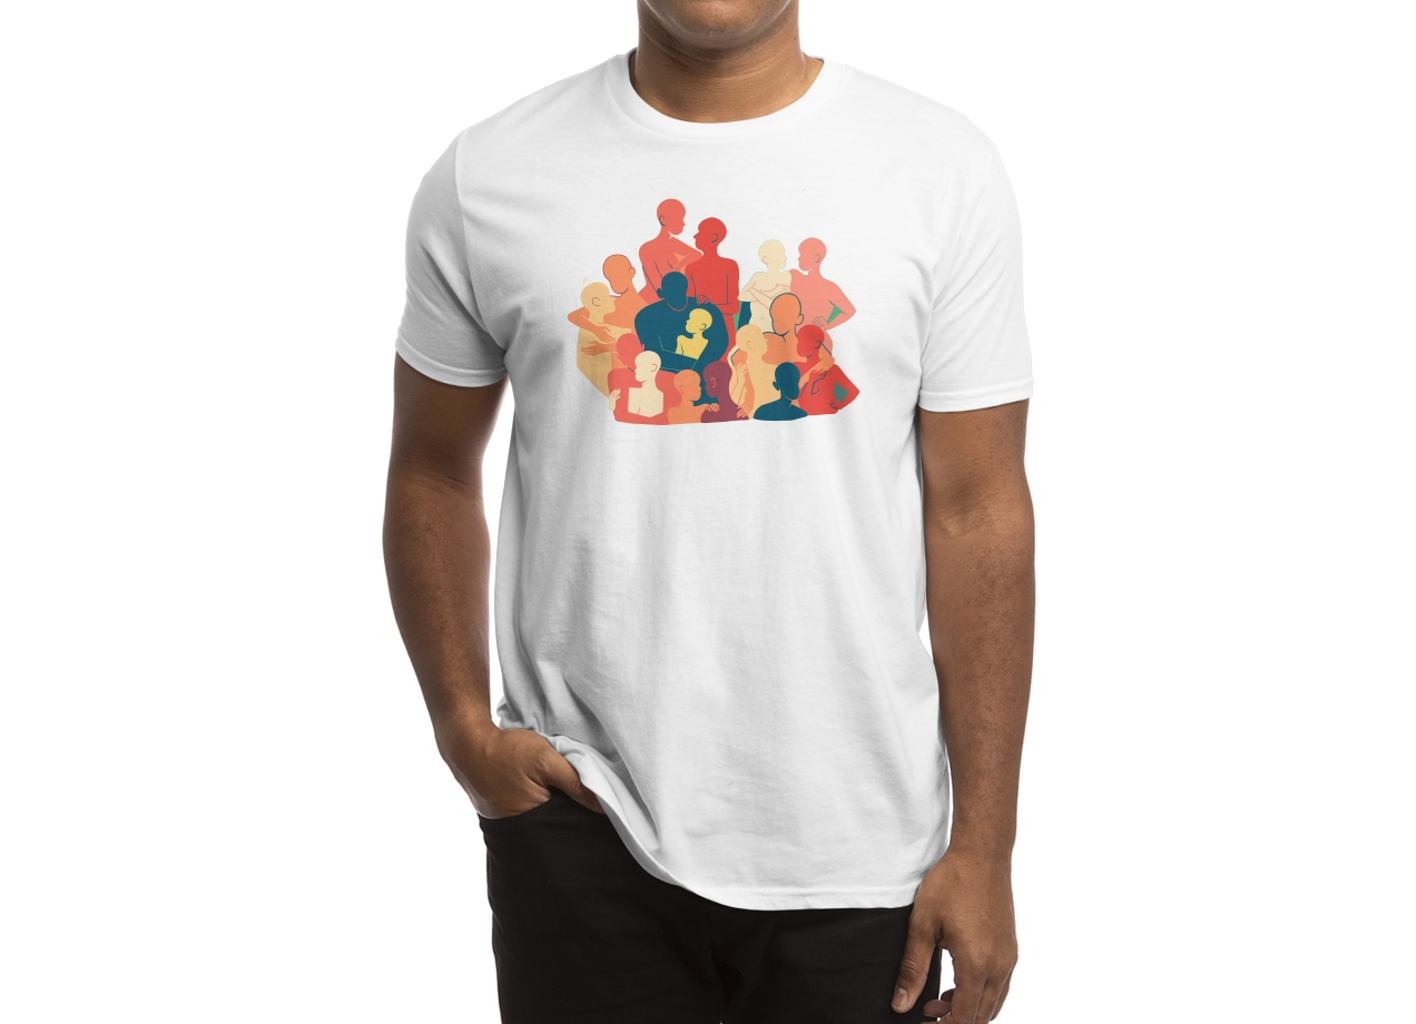 Threadless: Don't Camouflage Your Love